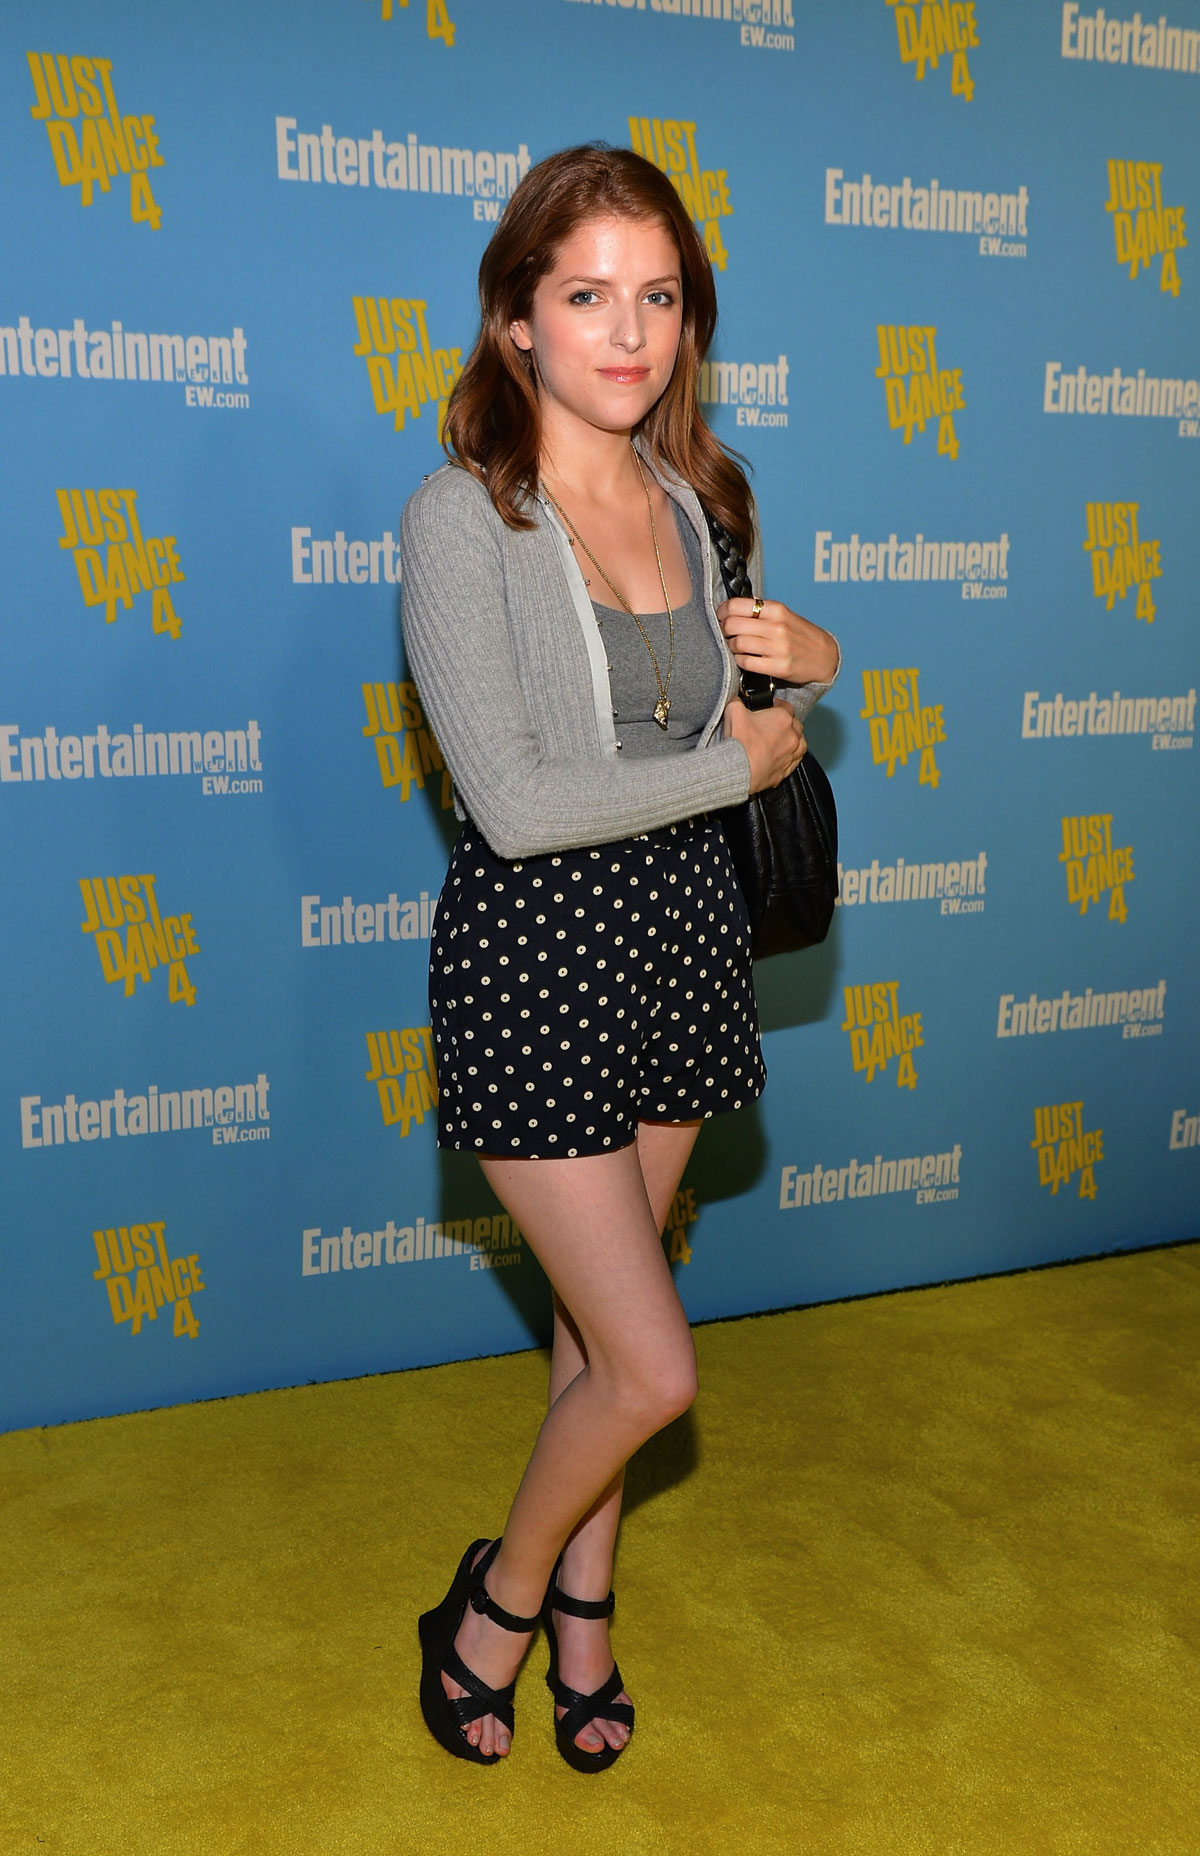 ANNA KENDRICK At Entertainment Weekly Party